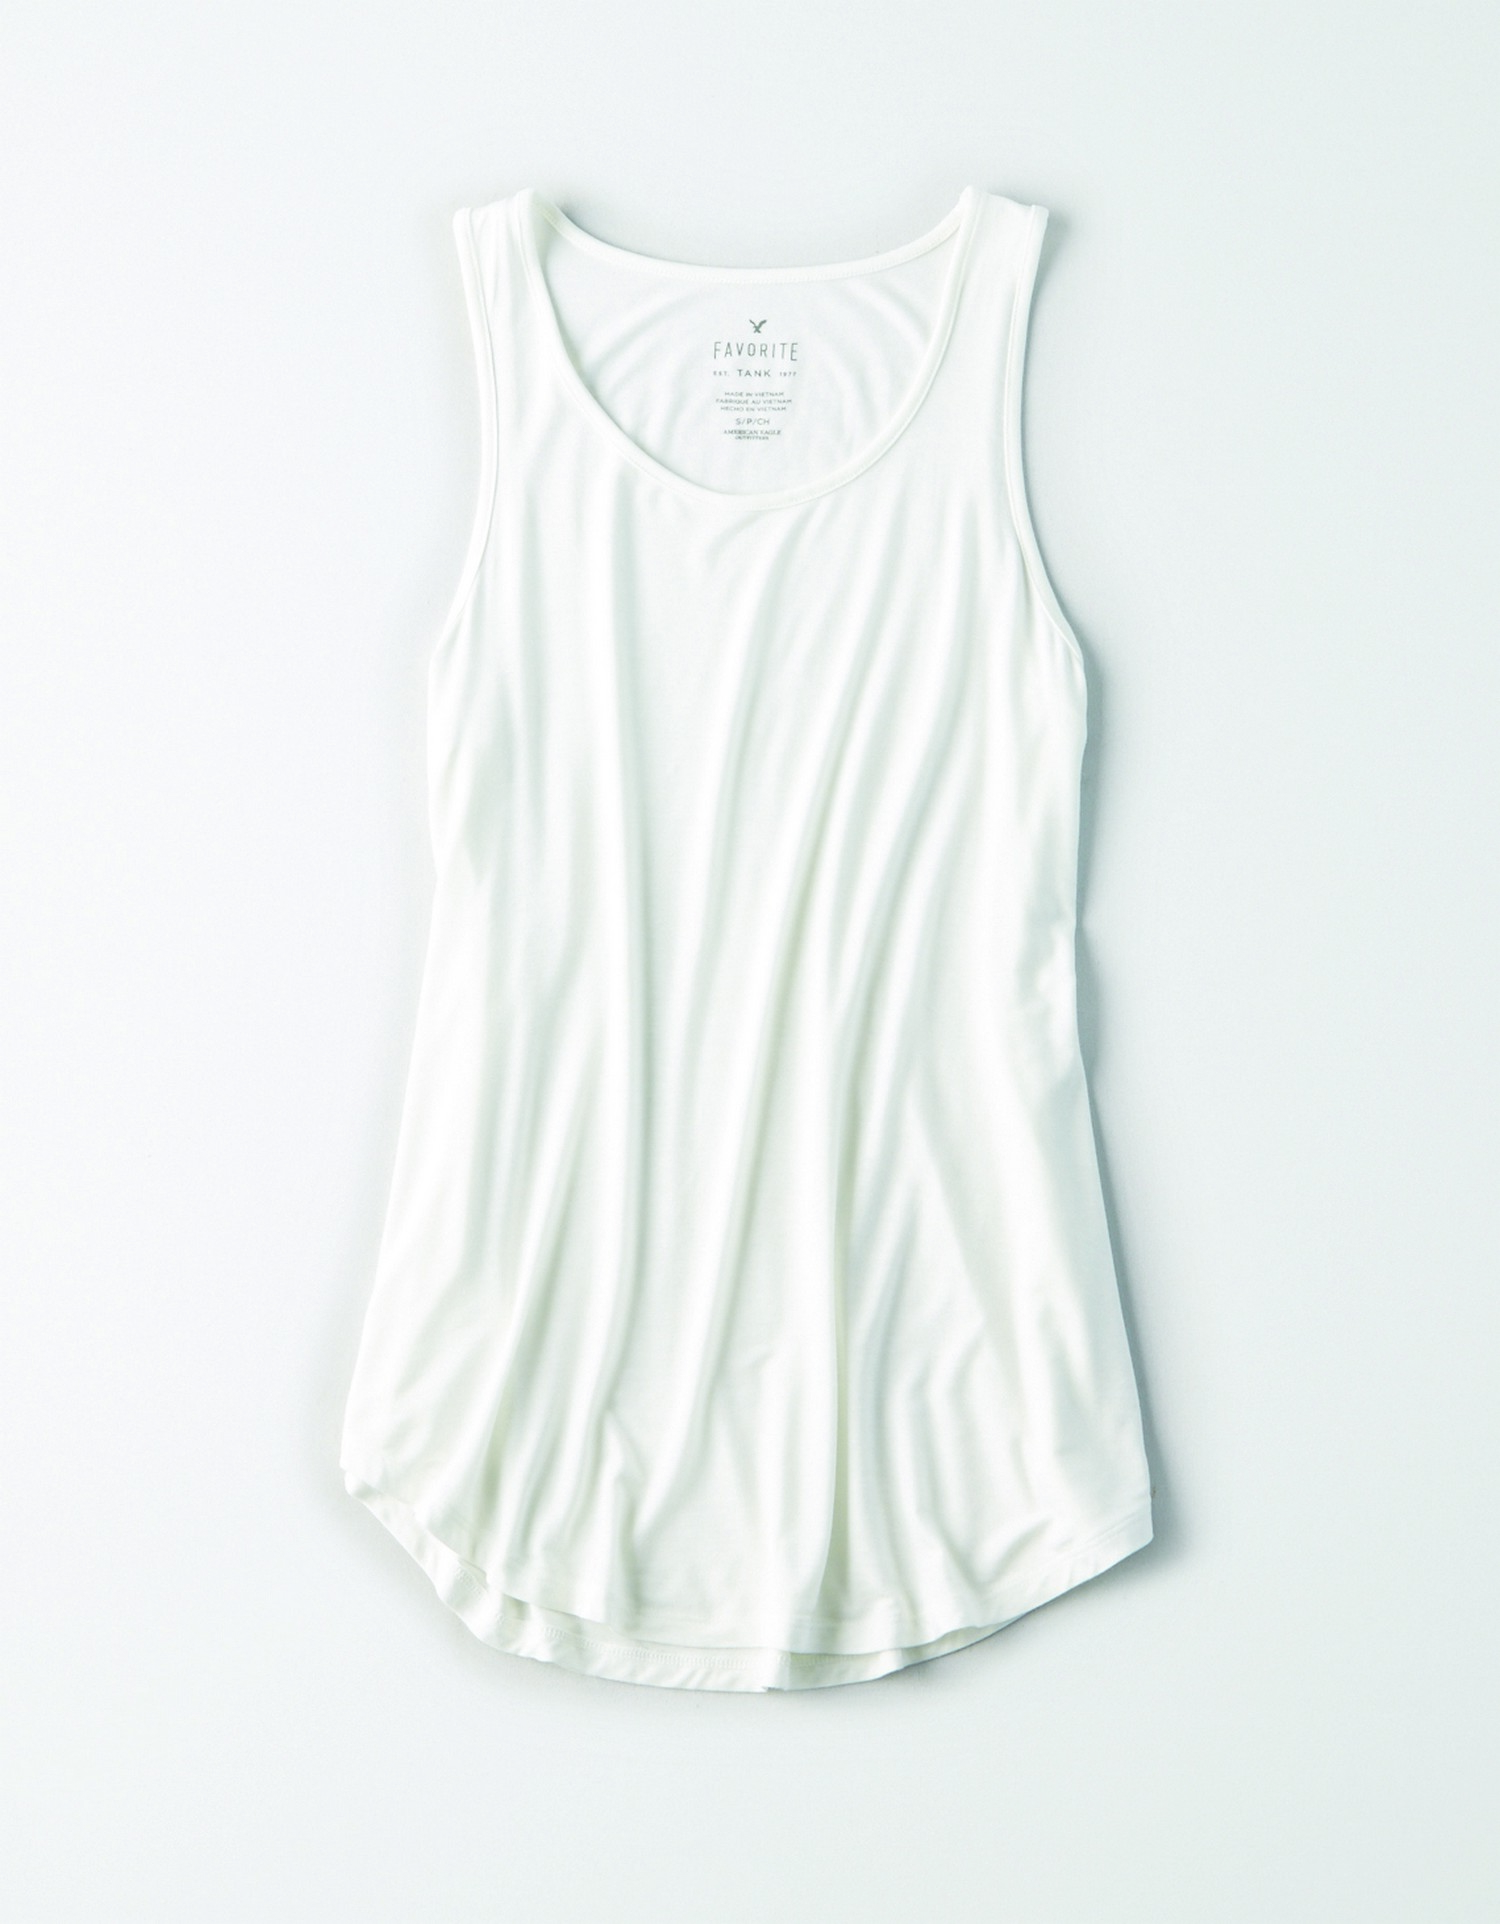 AE - W - Apparel - SCOOP NK THIN BIND FAV TANK-PC DYE - White - Solid Color - Soft & Sexy AL